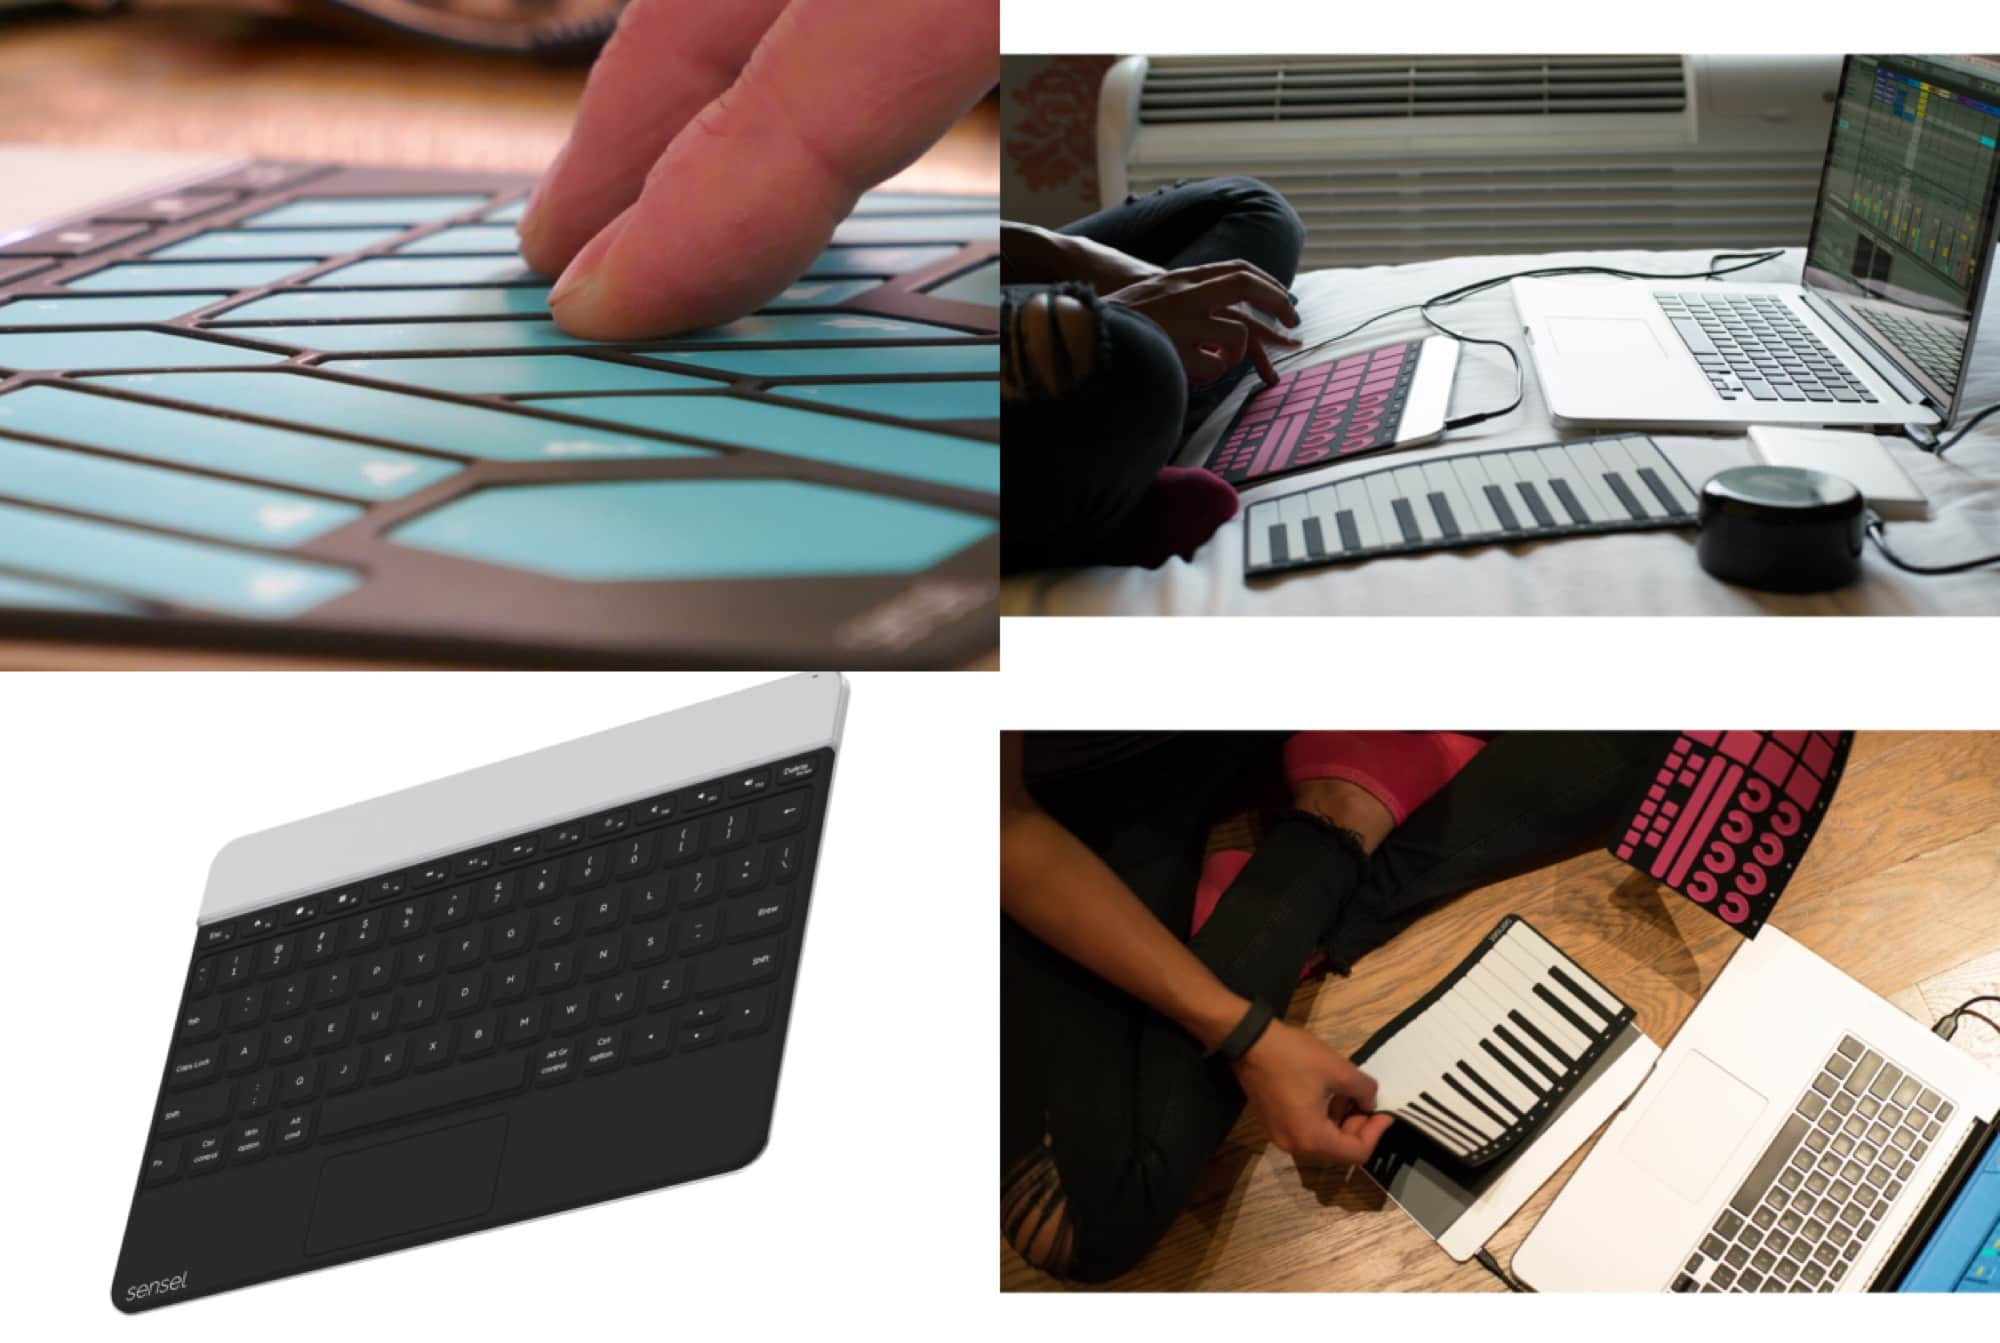 The Sensel Morph keyboard is portable and flexible.